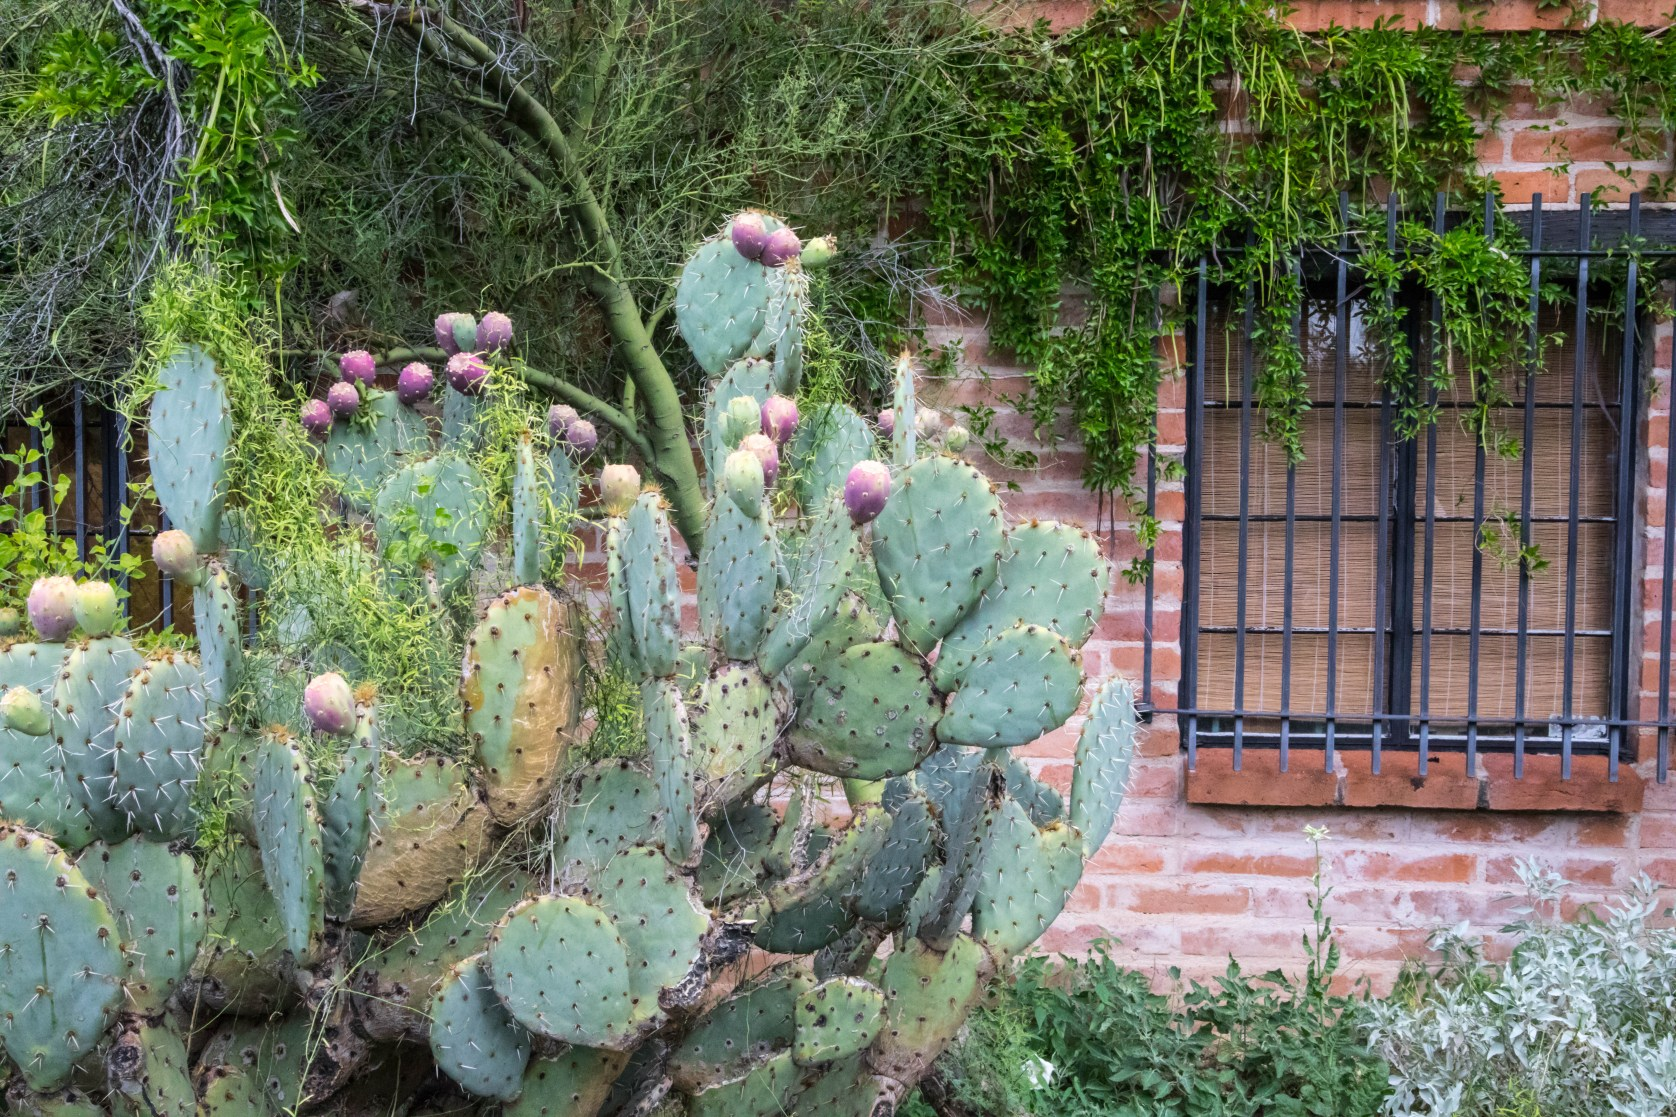 Tucson Arizona Cactus and Brick House in the Desert by Annie Fairfax